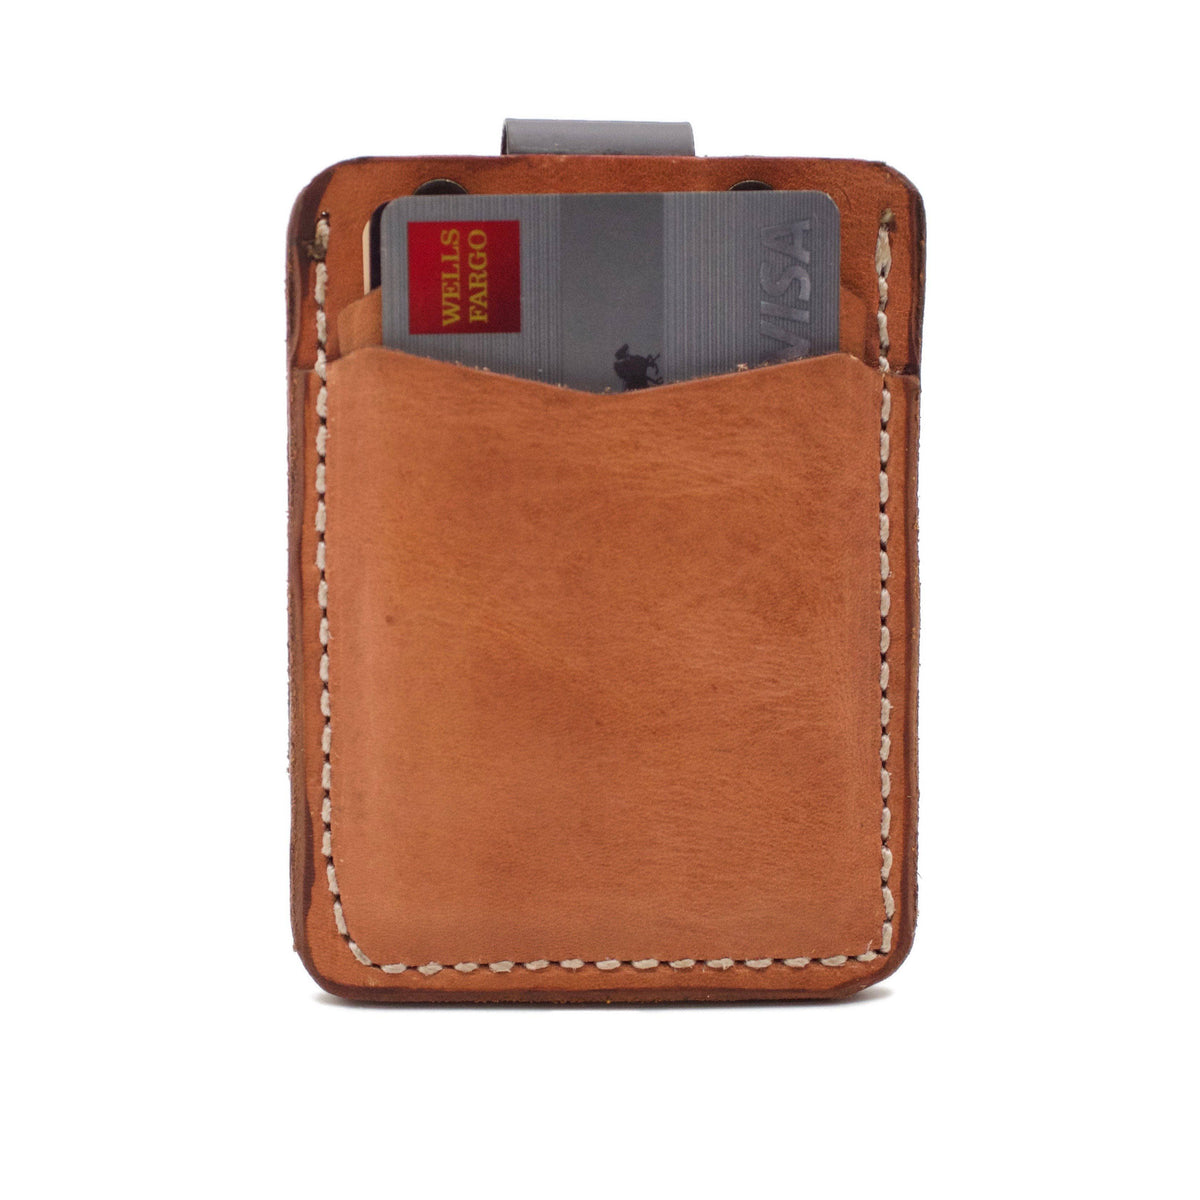 The OAK CREEK HD400 Minimalist Wallet in Natural Harness featuring Hermann Oak®